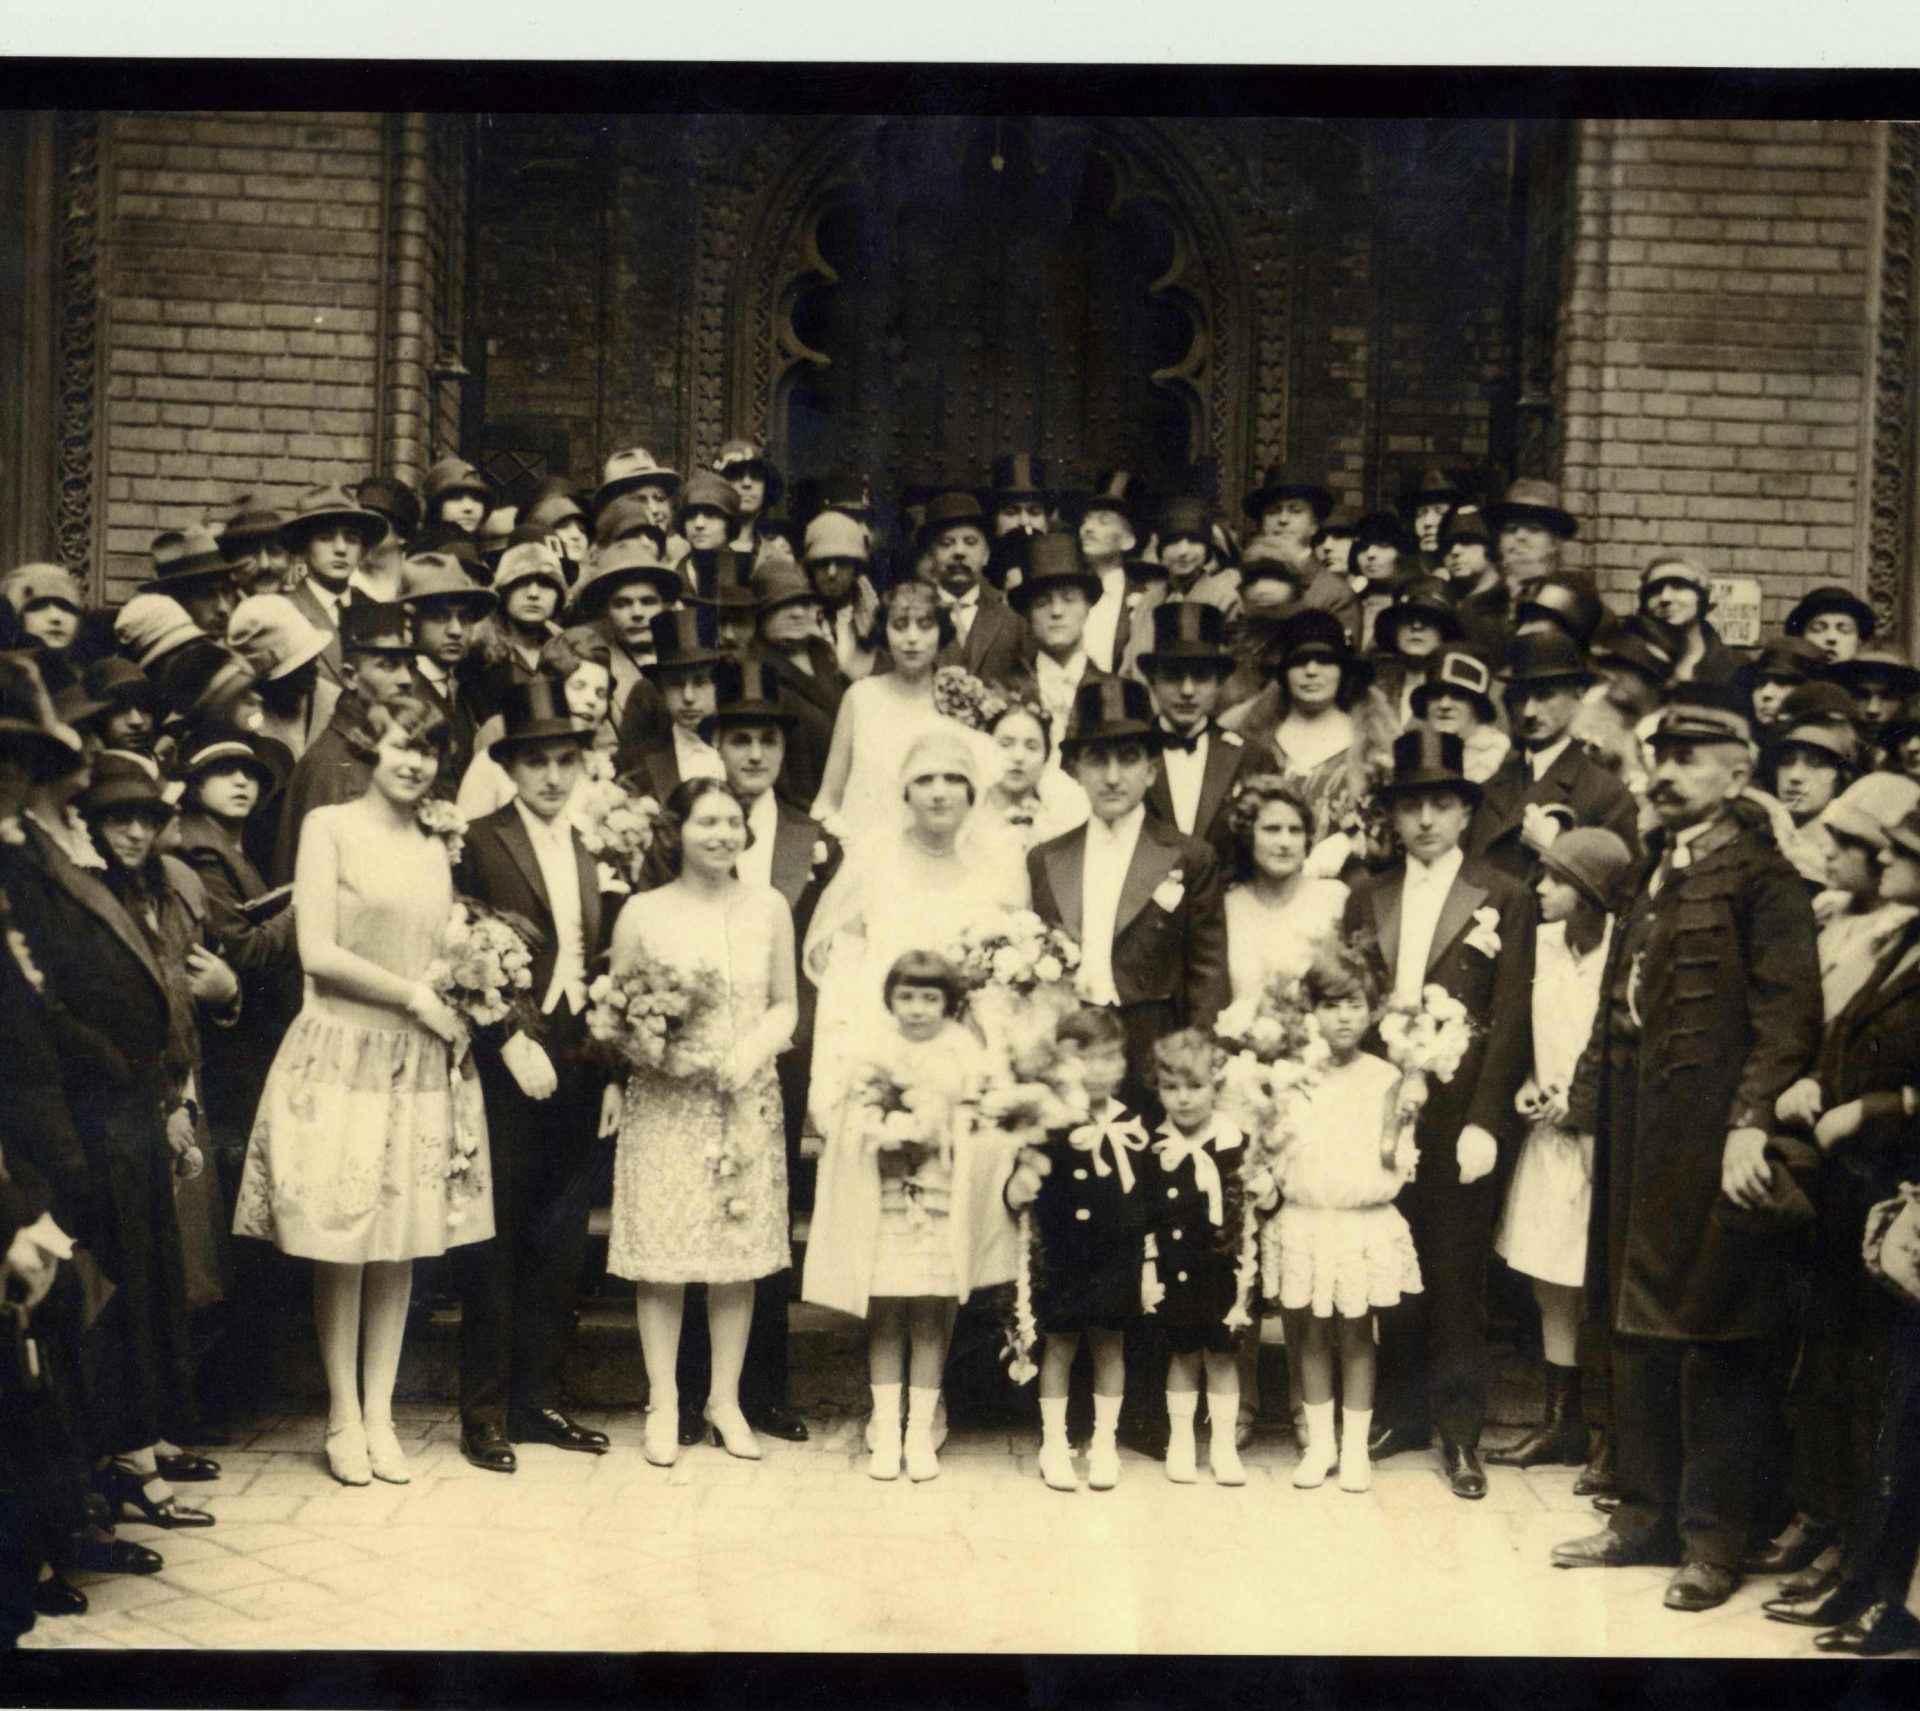 Wedding of Zigmund Barna and Elisabeth Molnar, Budapest, 1926.